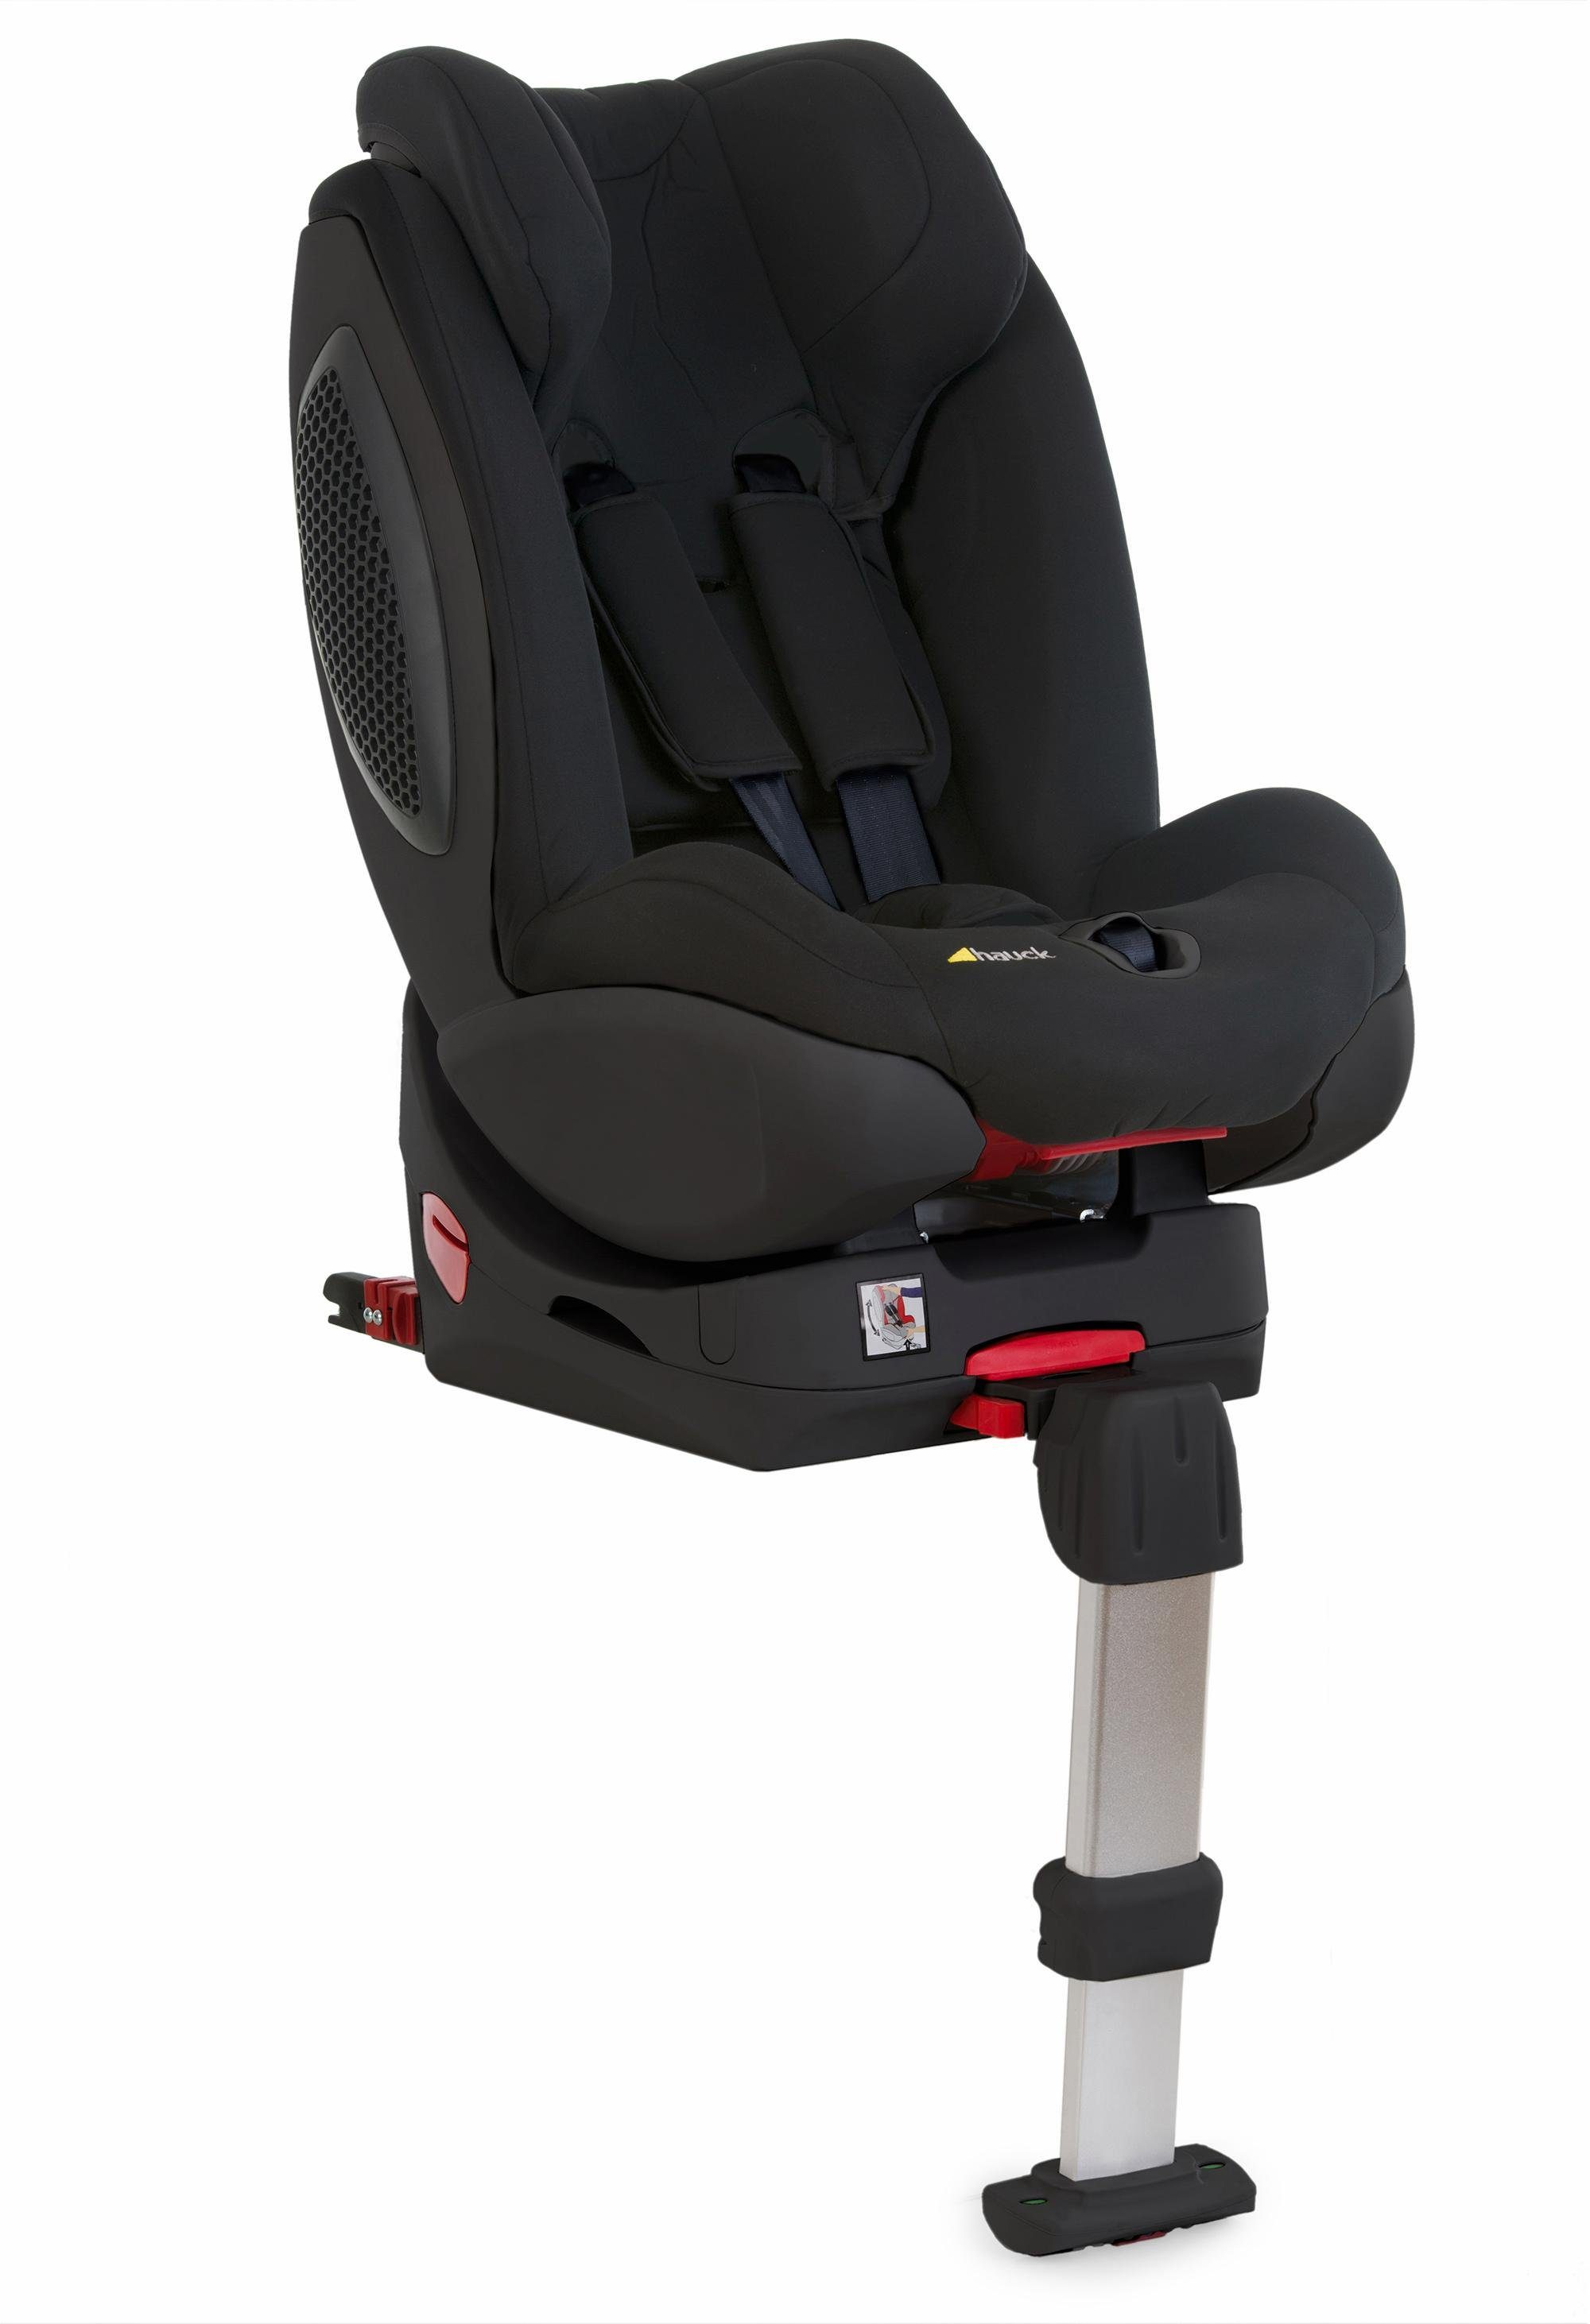 hauck FUN FOR KIDS Kindersitz, 0 - 18 kg, »Varioguard Plus Black Edition«